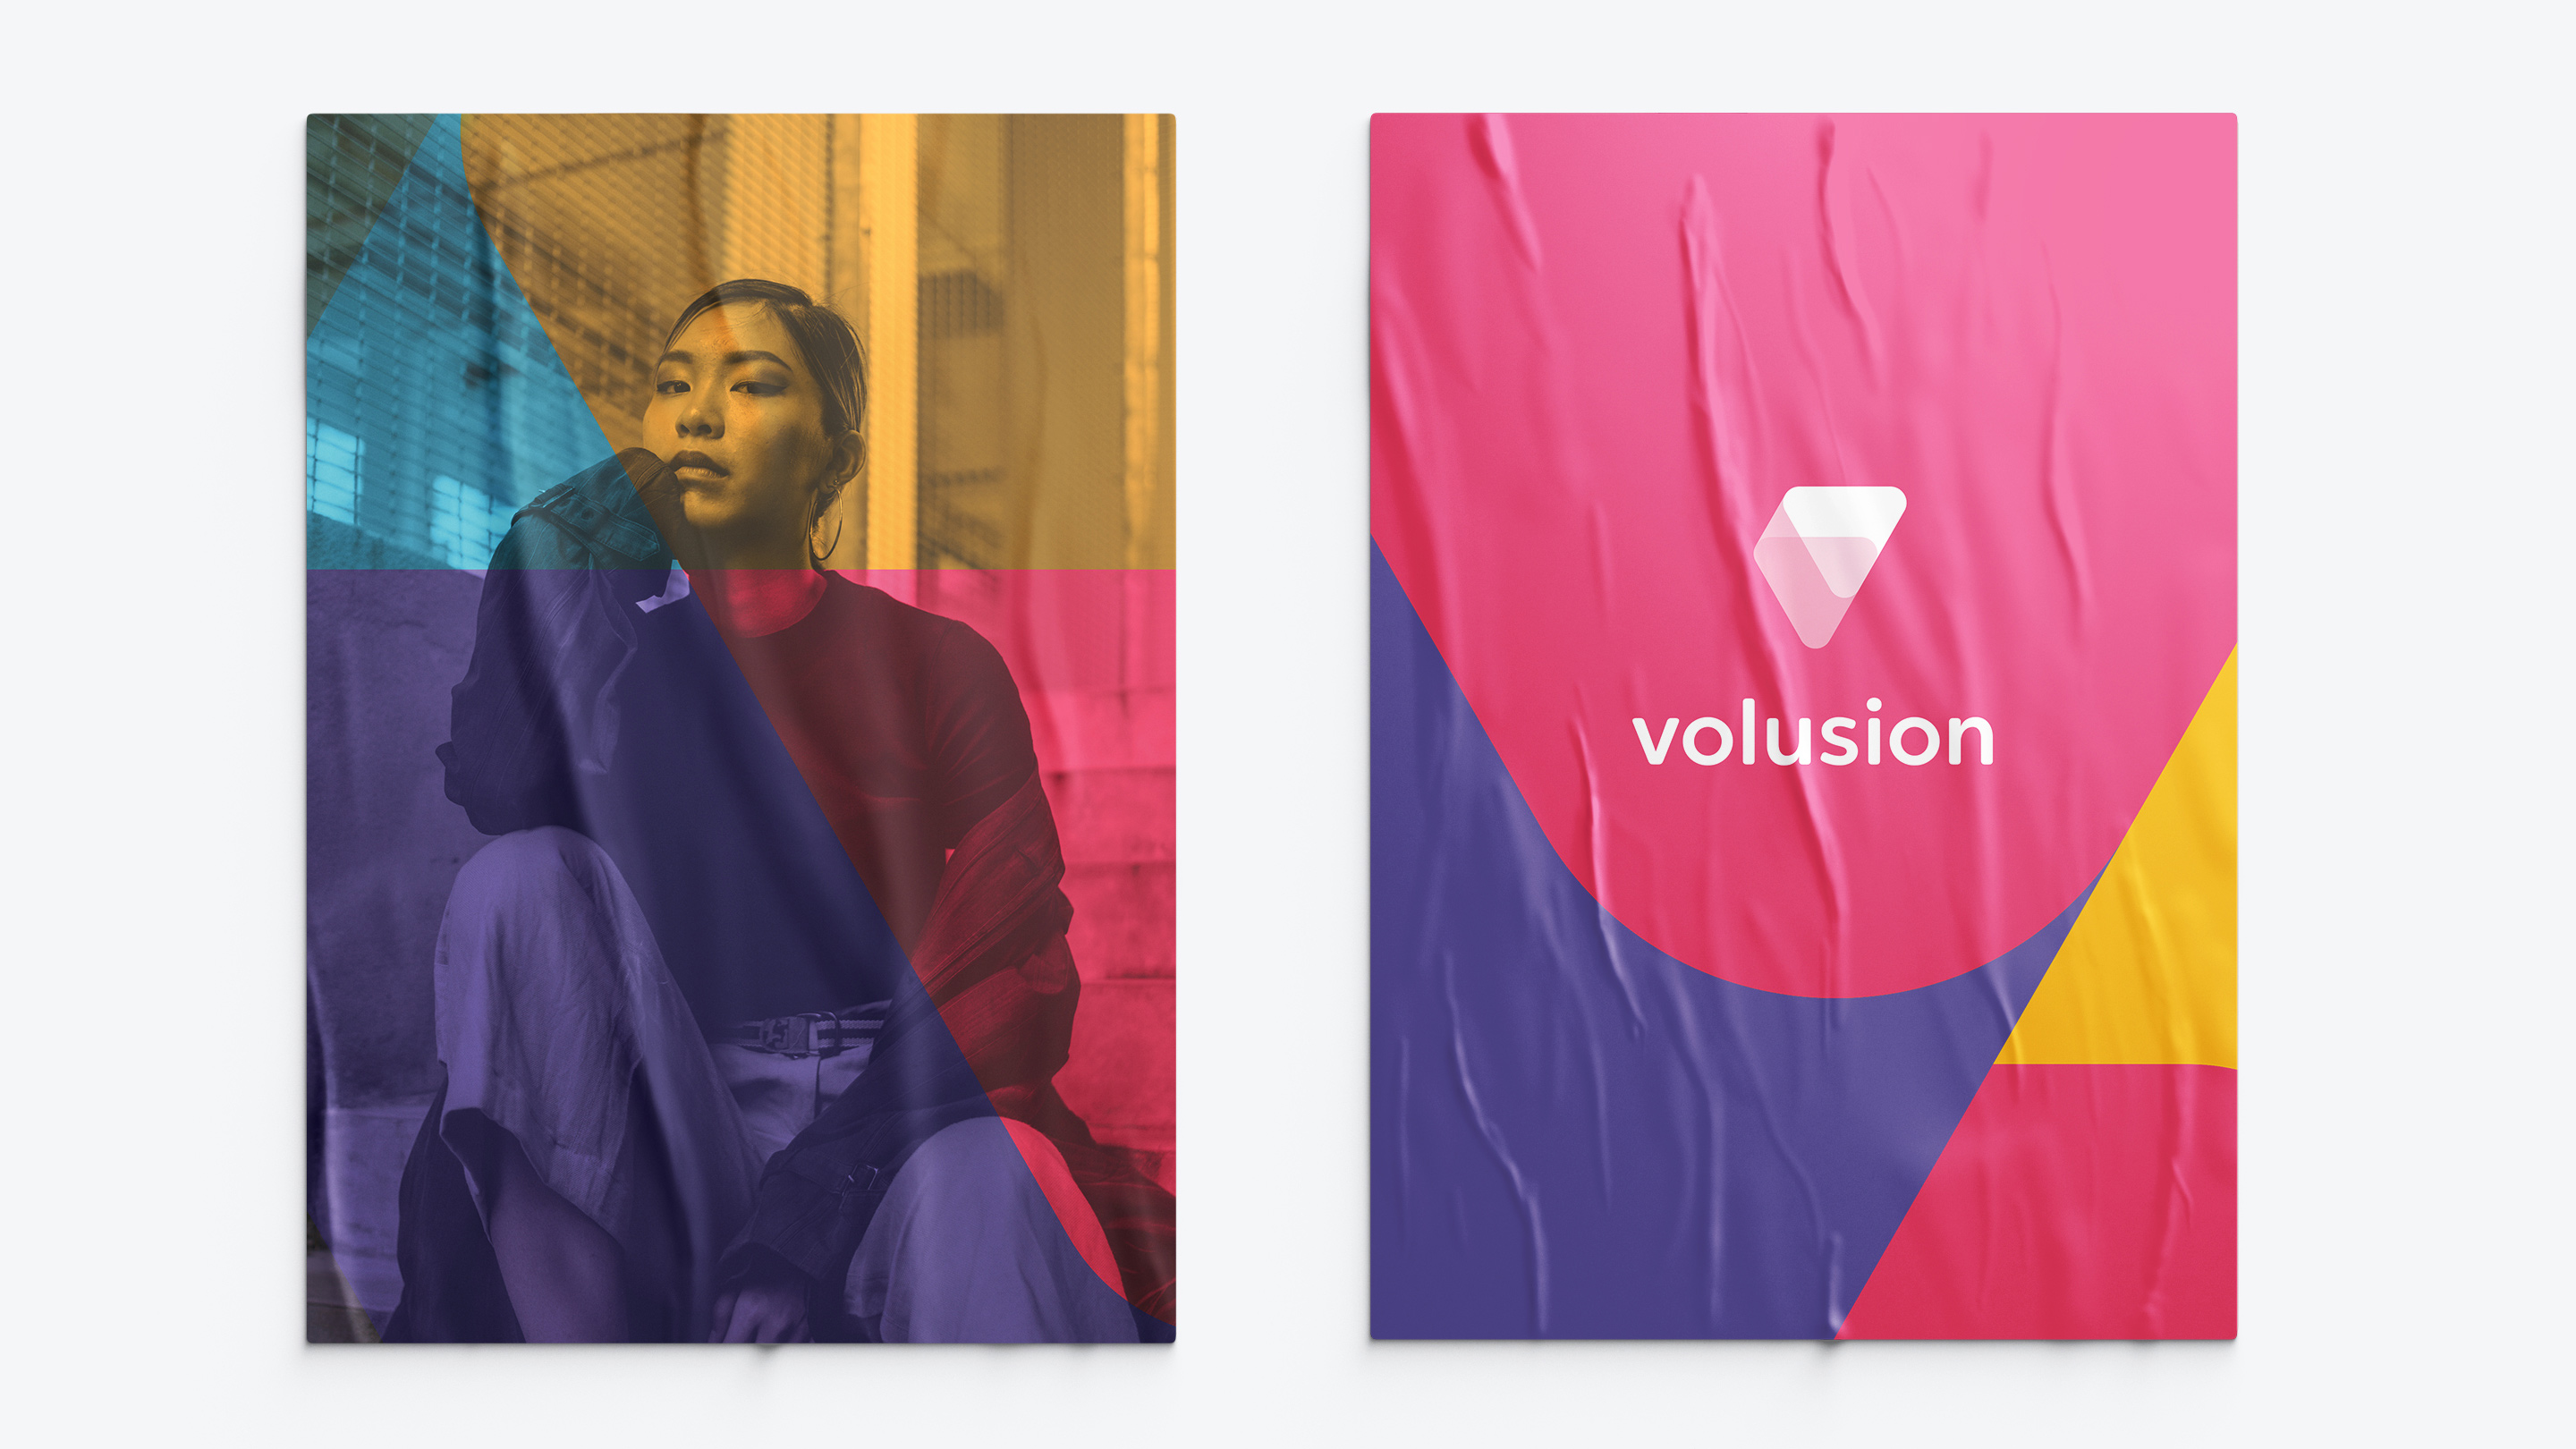 Volusion Branded Posters